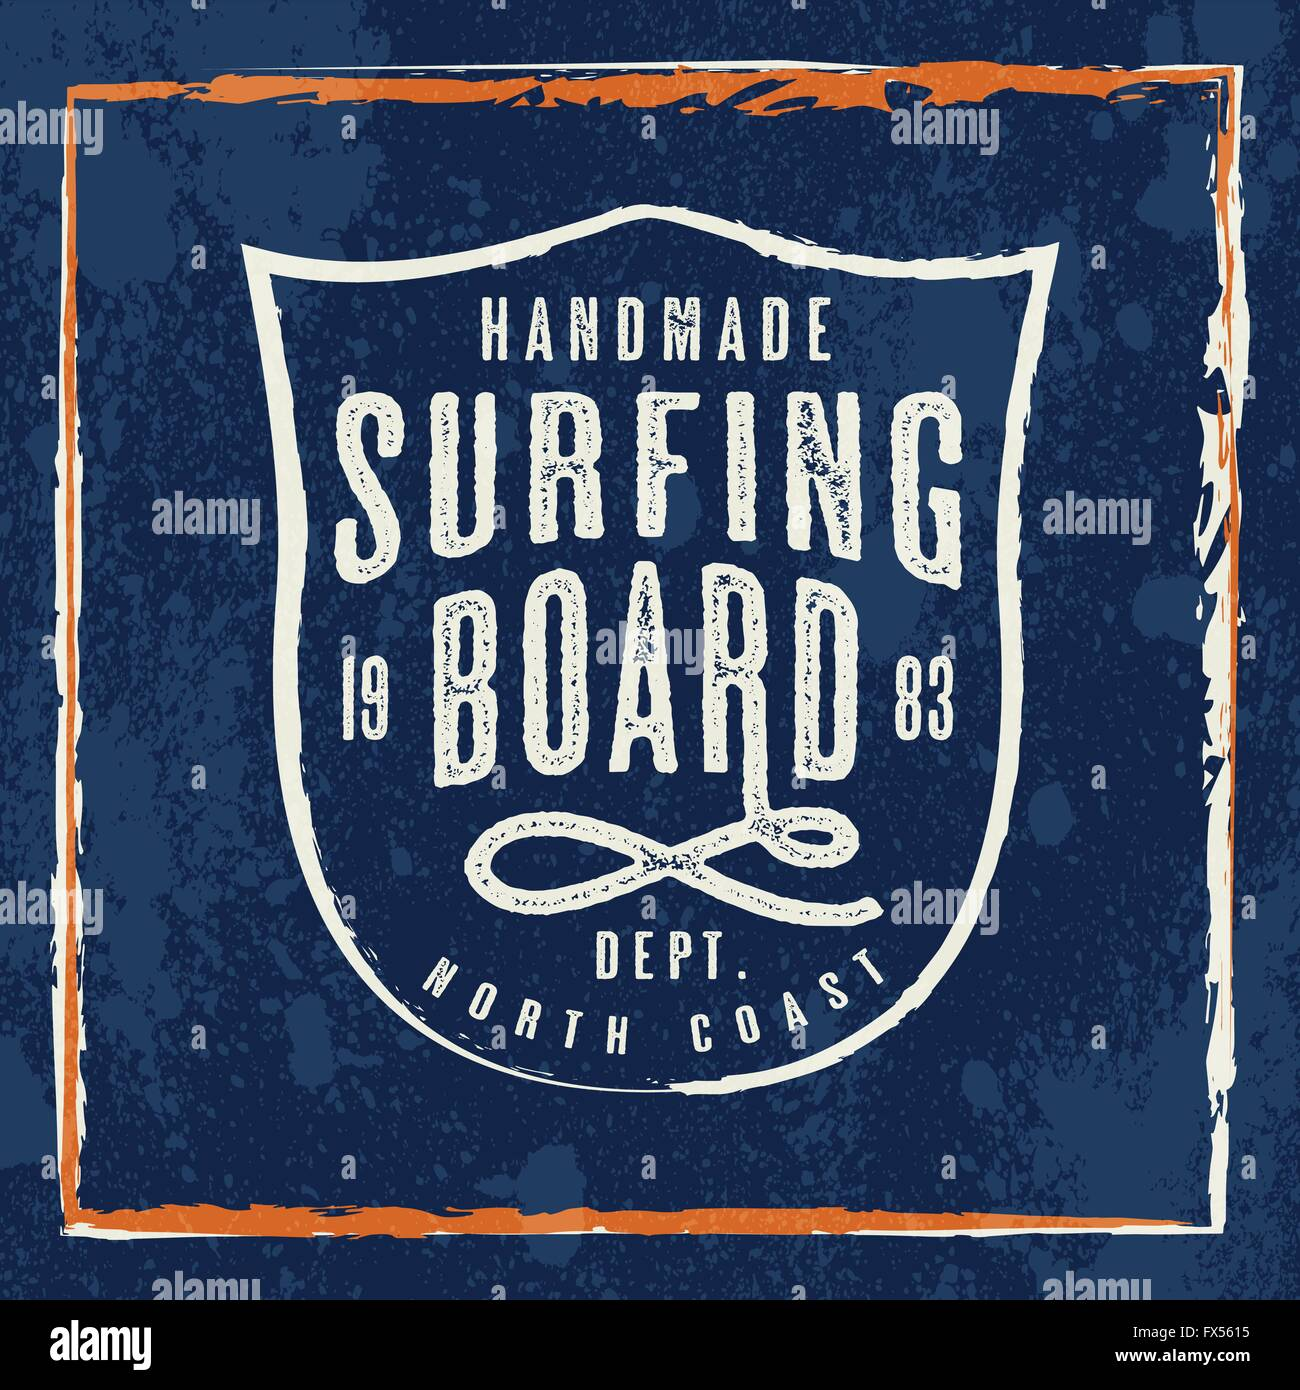 Handmade Surfing Board print for apparel. Retro shield graphic for fashion and printing. Design with old school - Stock Vector